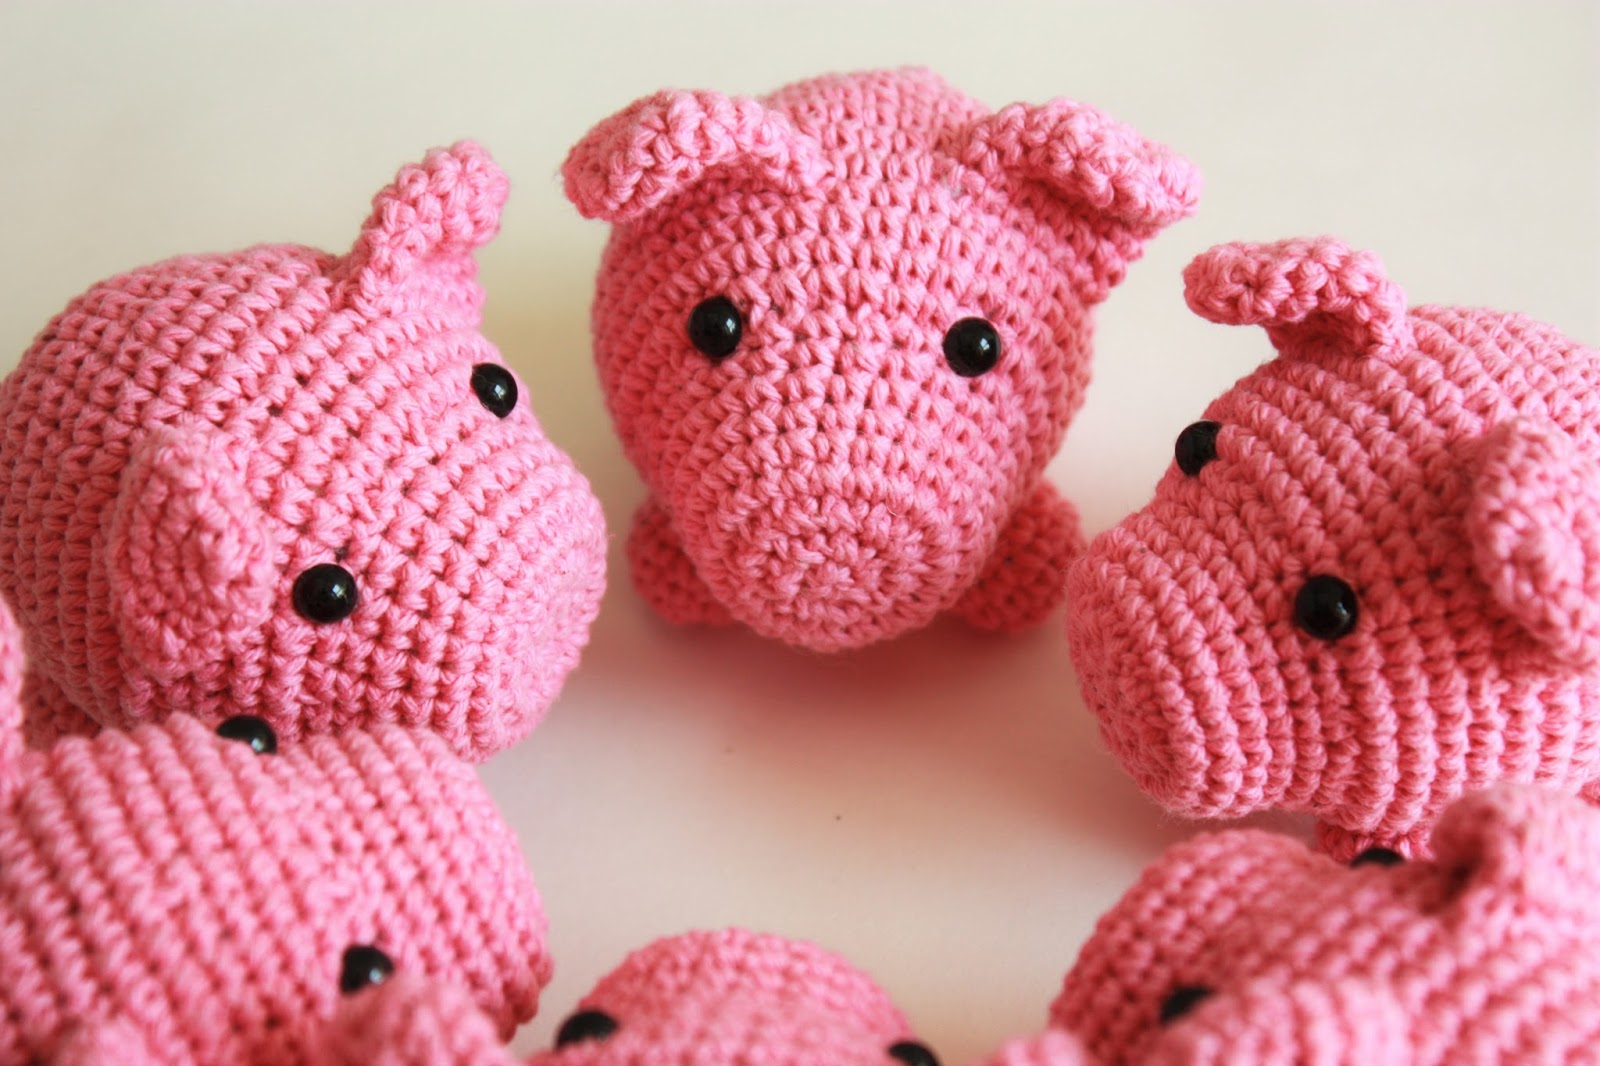 HAPPYAMIGURUMI: New Amigurumi Pattern : Little Pig PDF ...